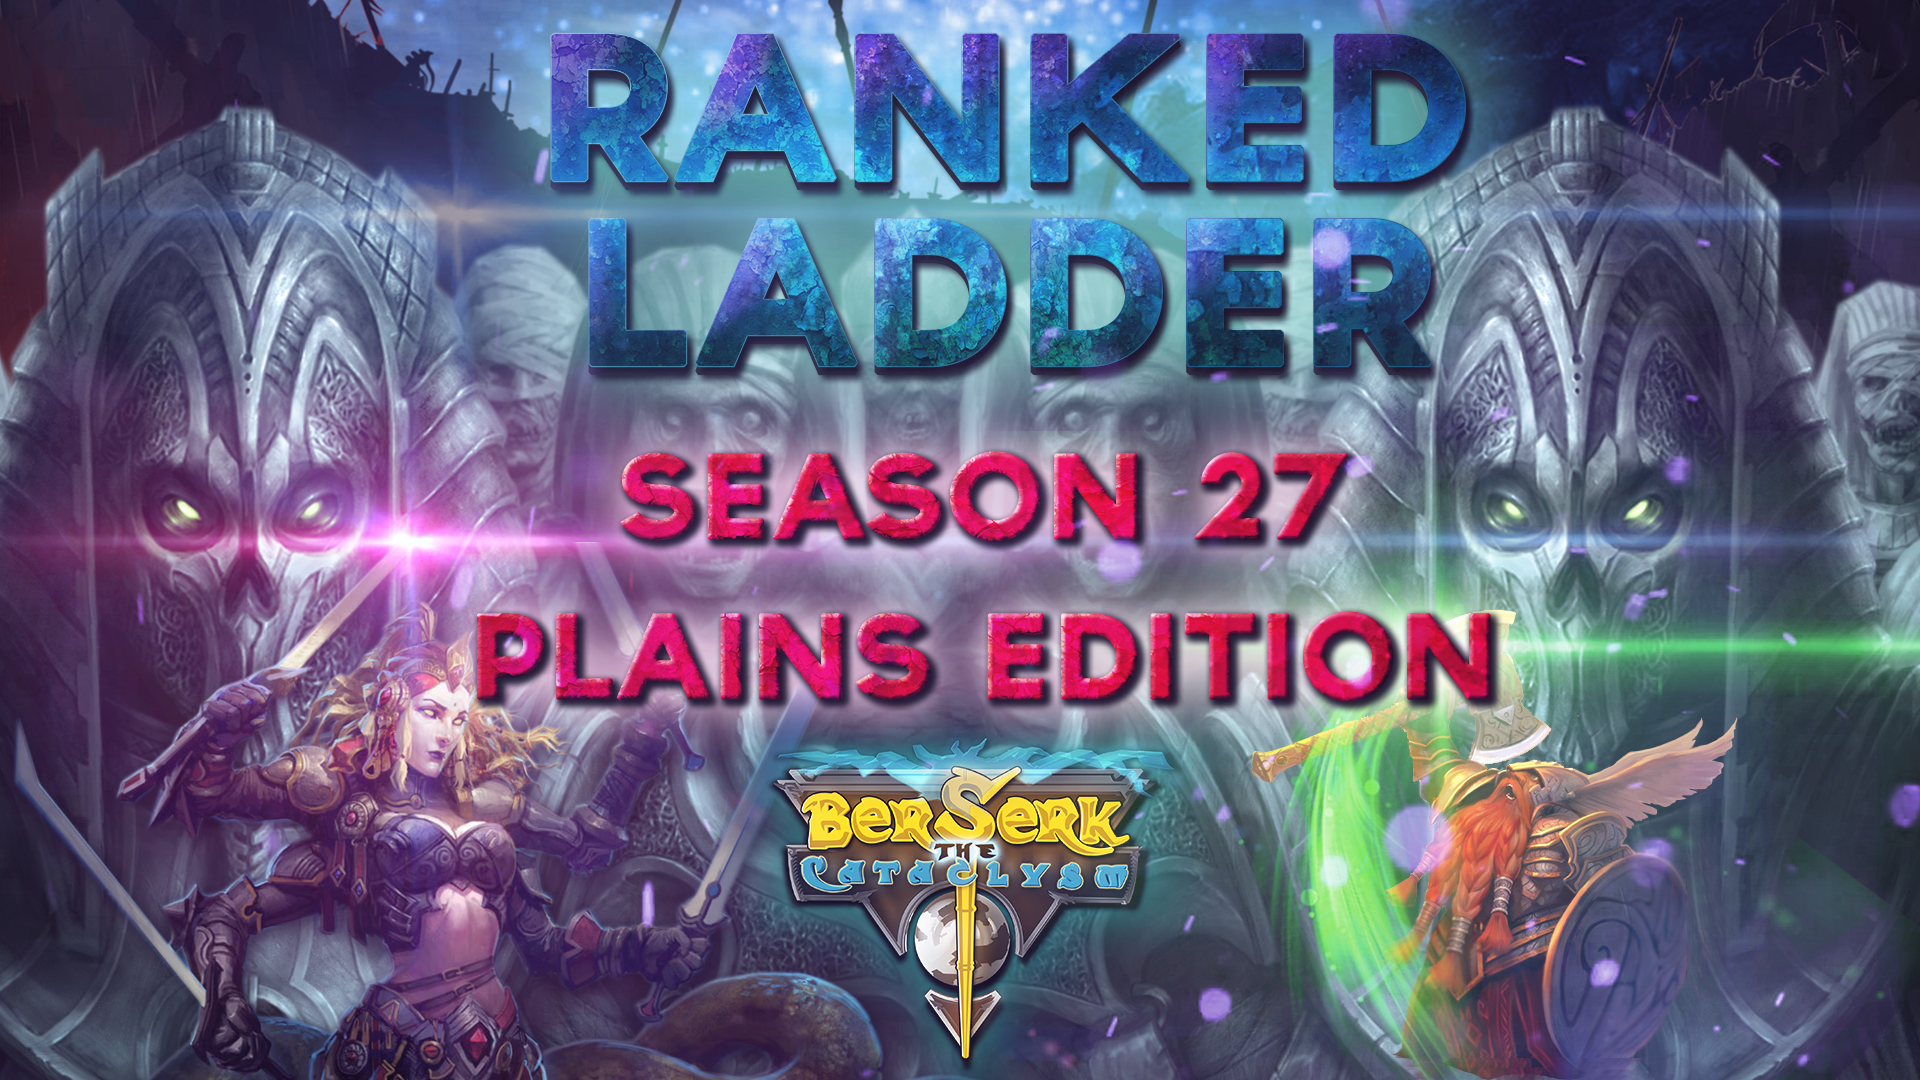 Ranked_LAdder_Season_27.jpg